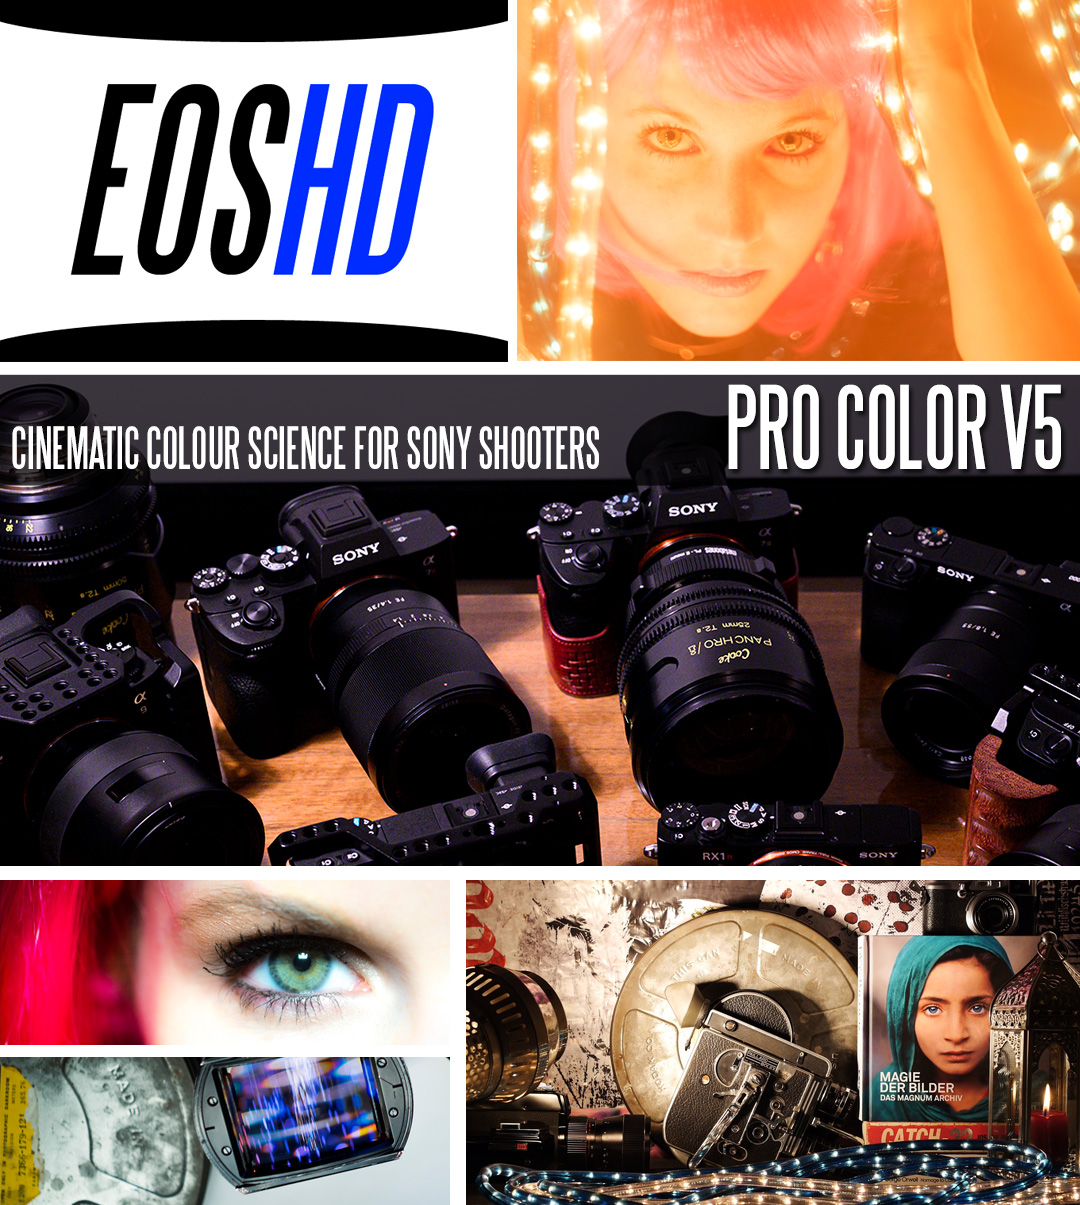 pro-color-v5-cover.jpg